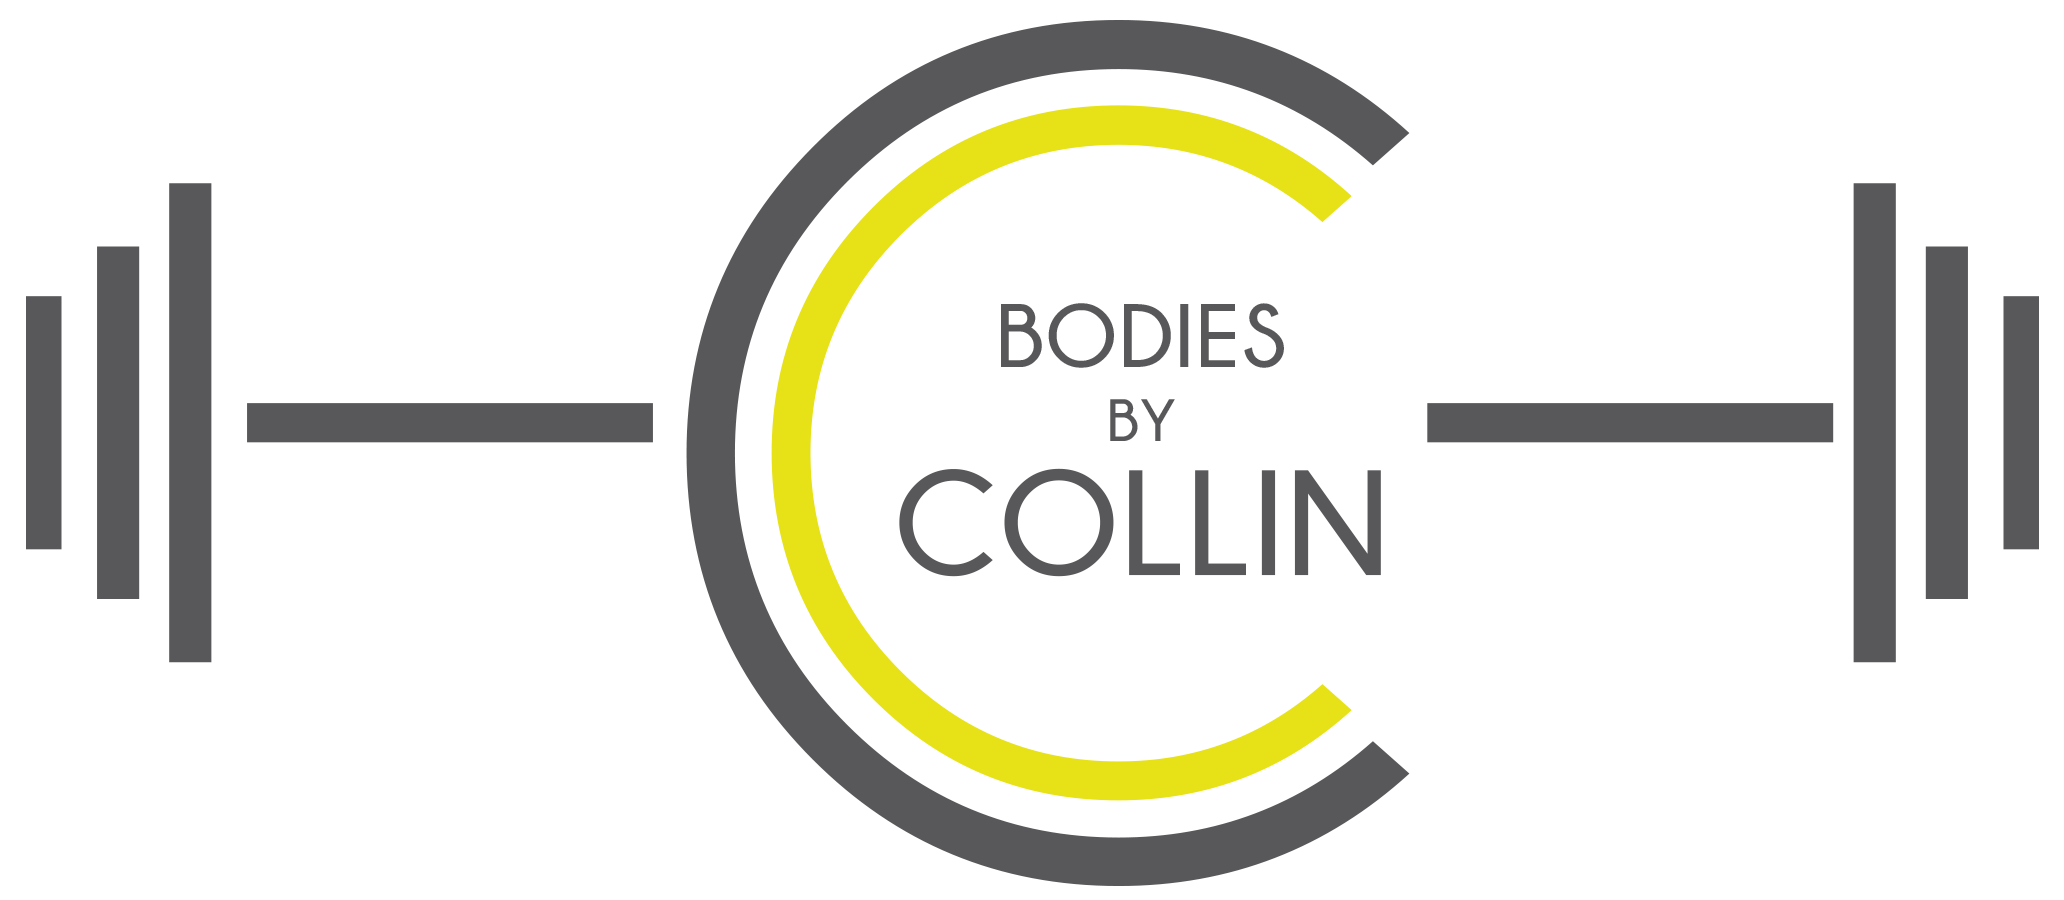 Bodies by Collin